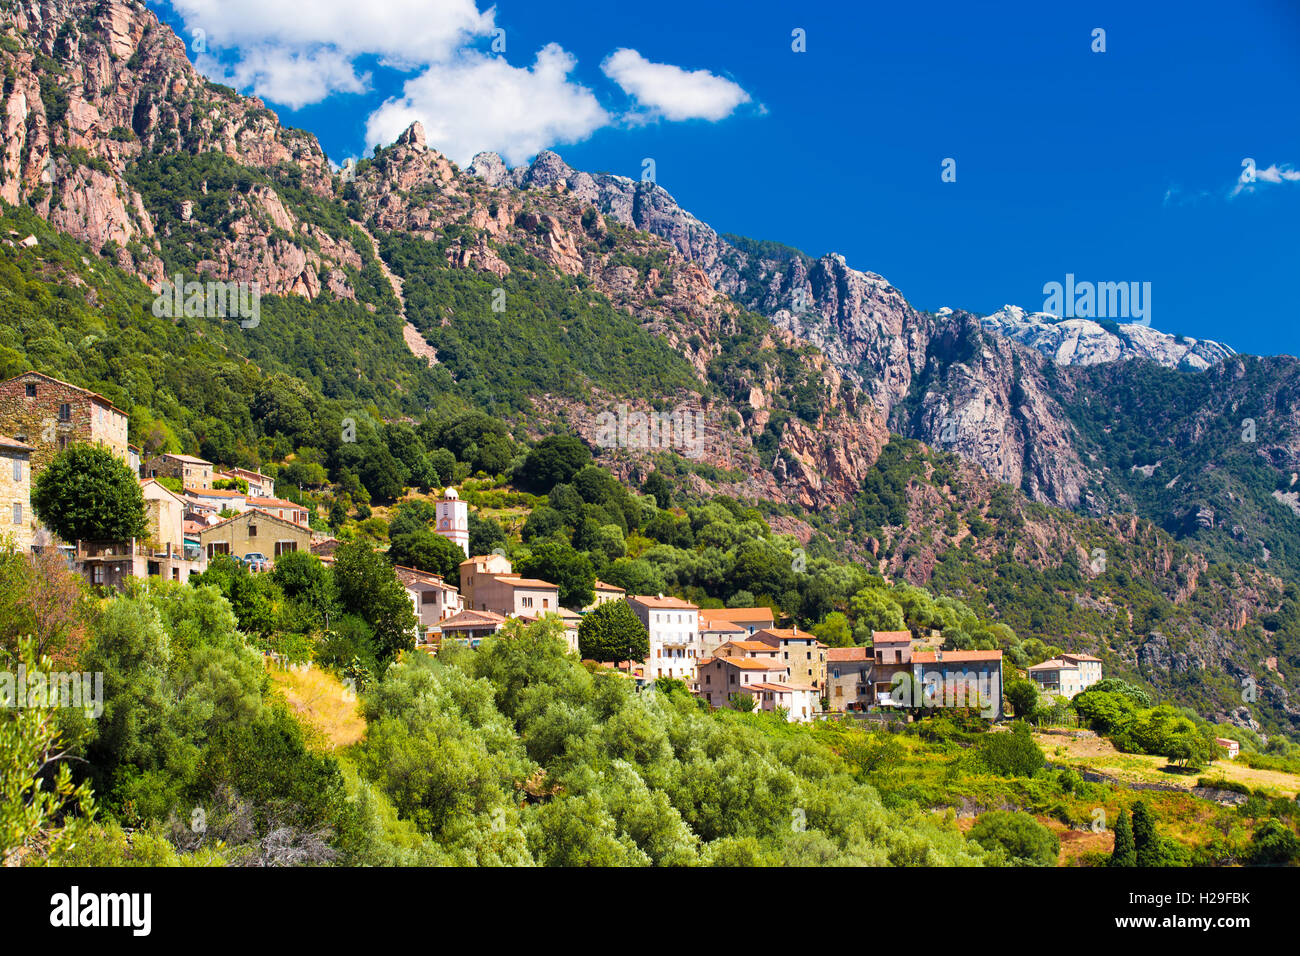 Ota town with the mountains in the background near Evisa and Porto, Corsica, France. - Stock Image